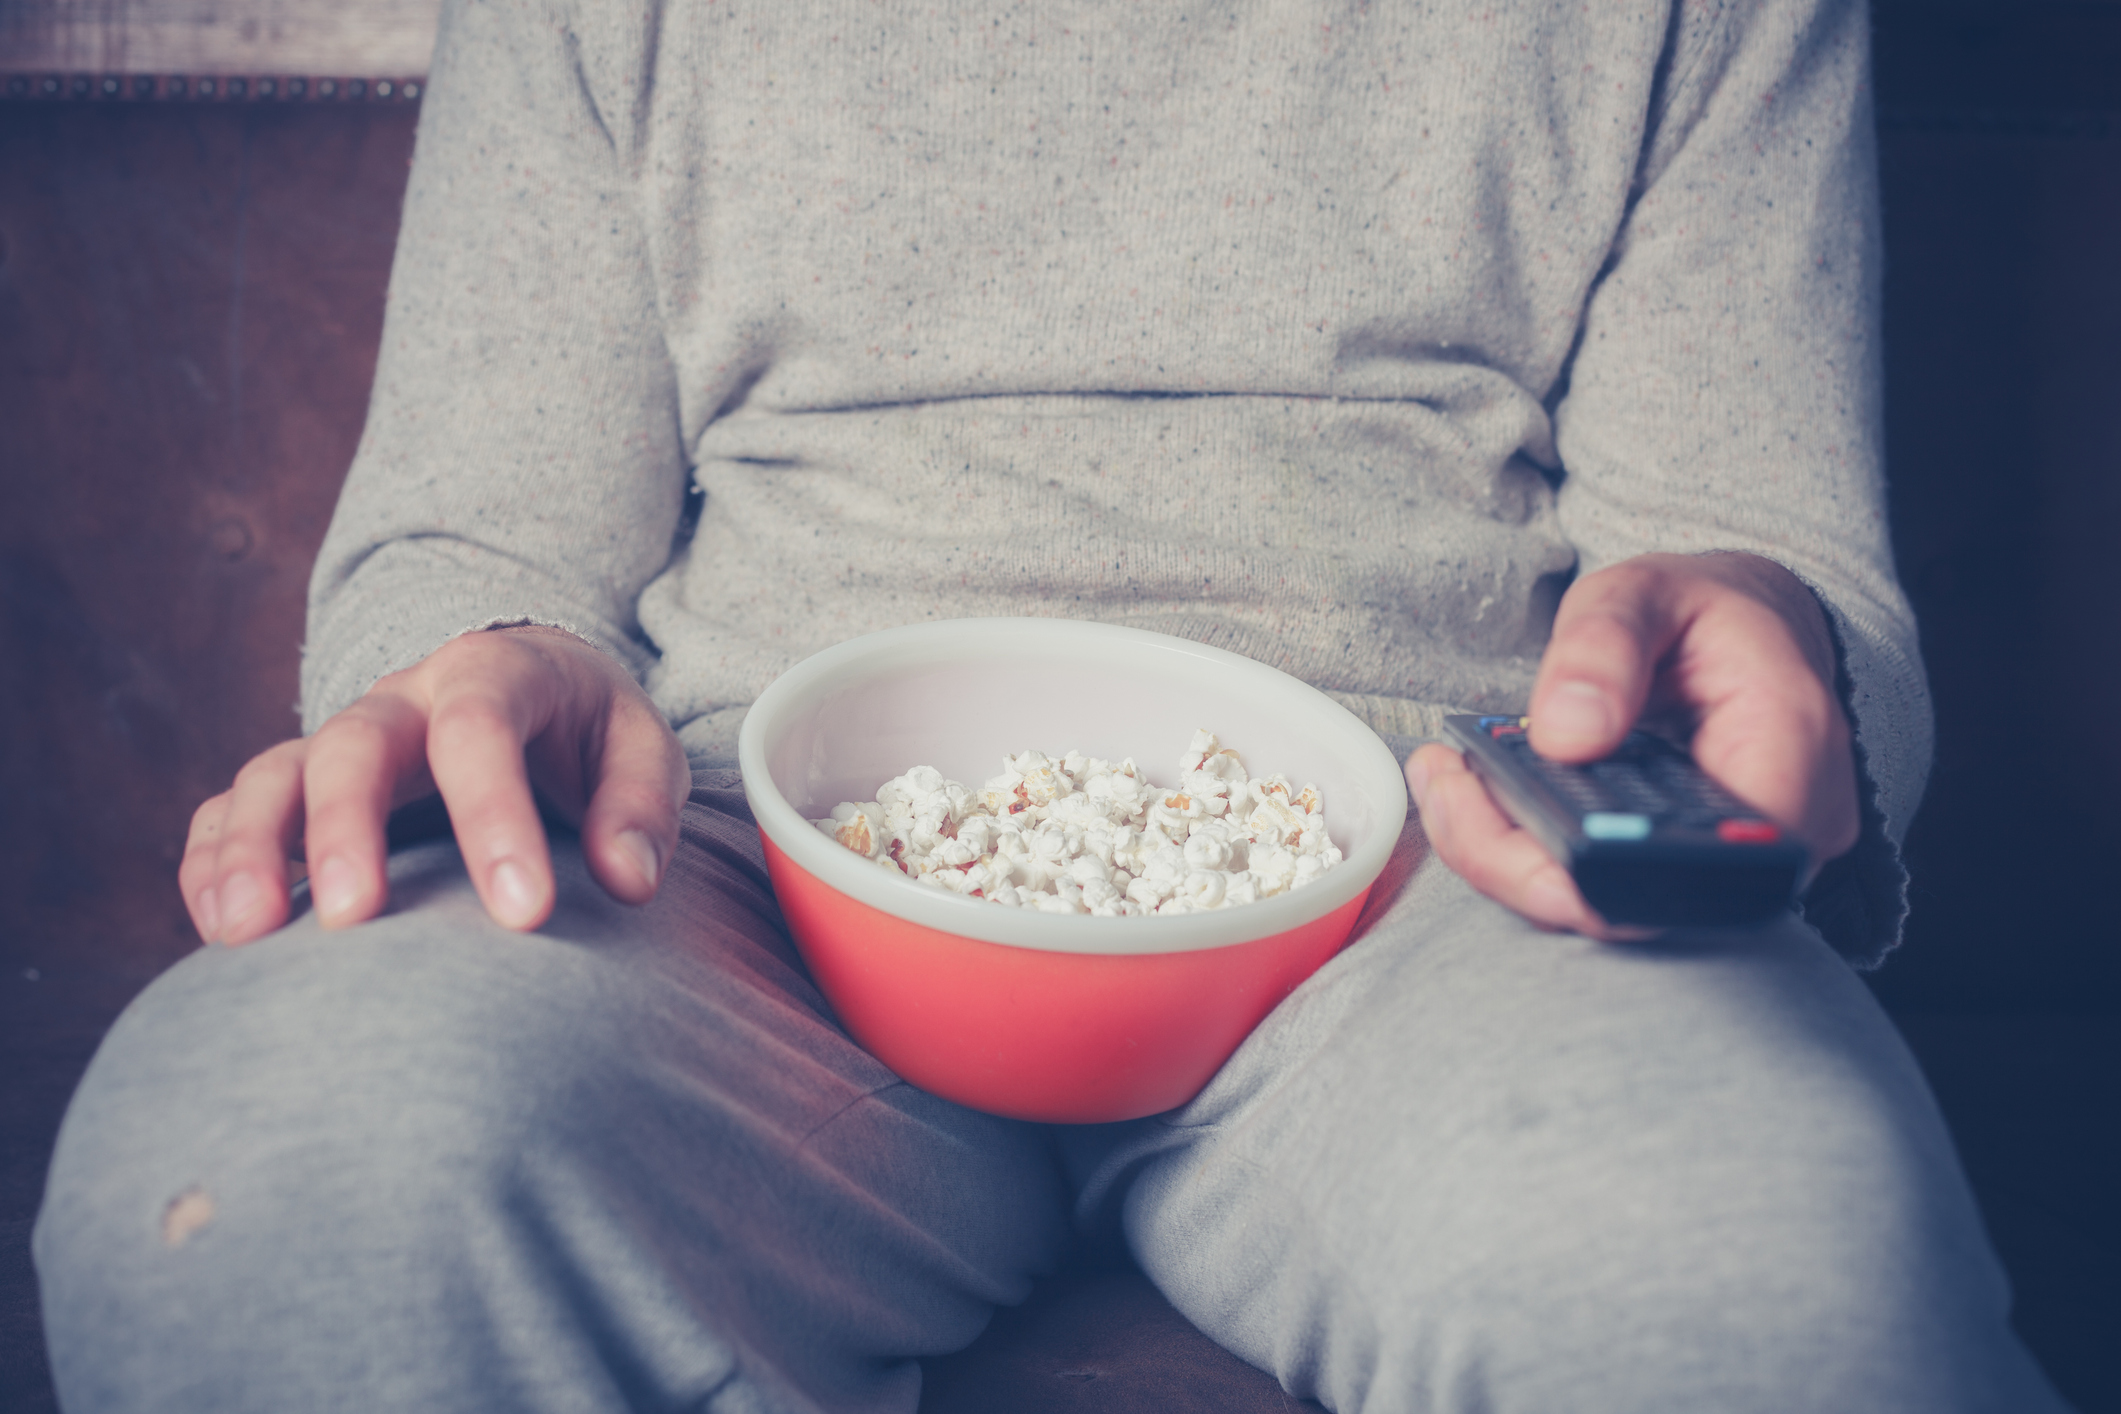 Exercise For Less: Cheap And Cheerful Ways To Get Off The Couch